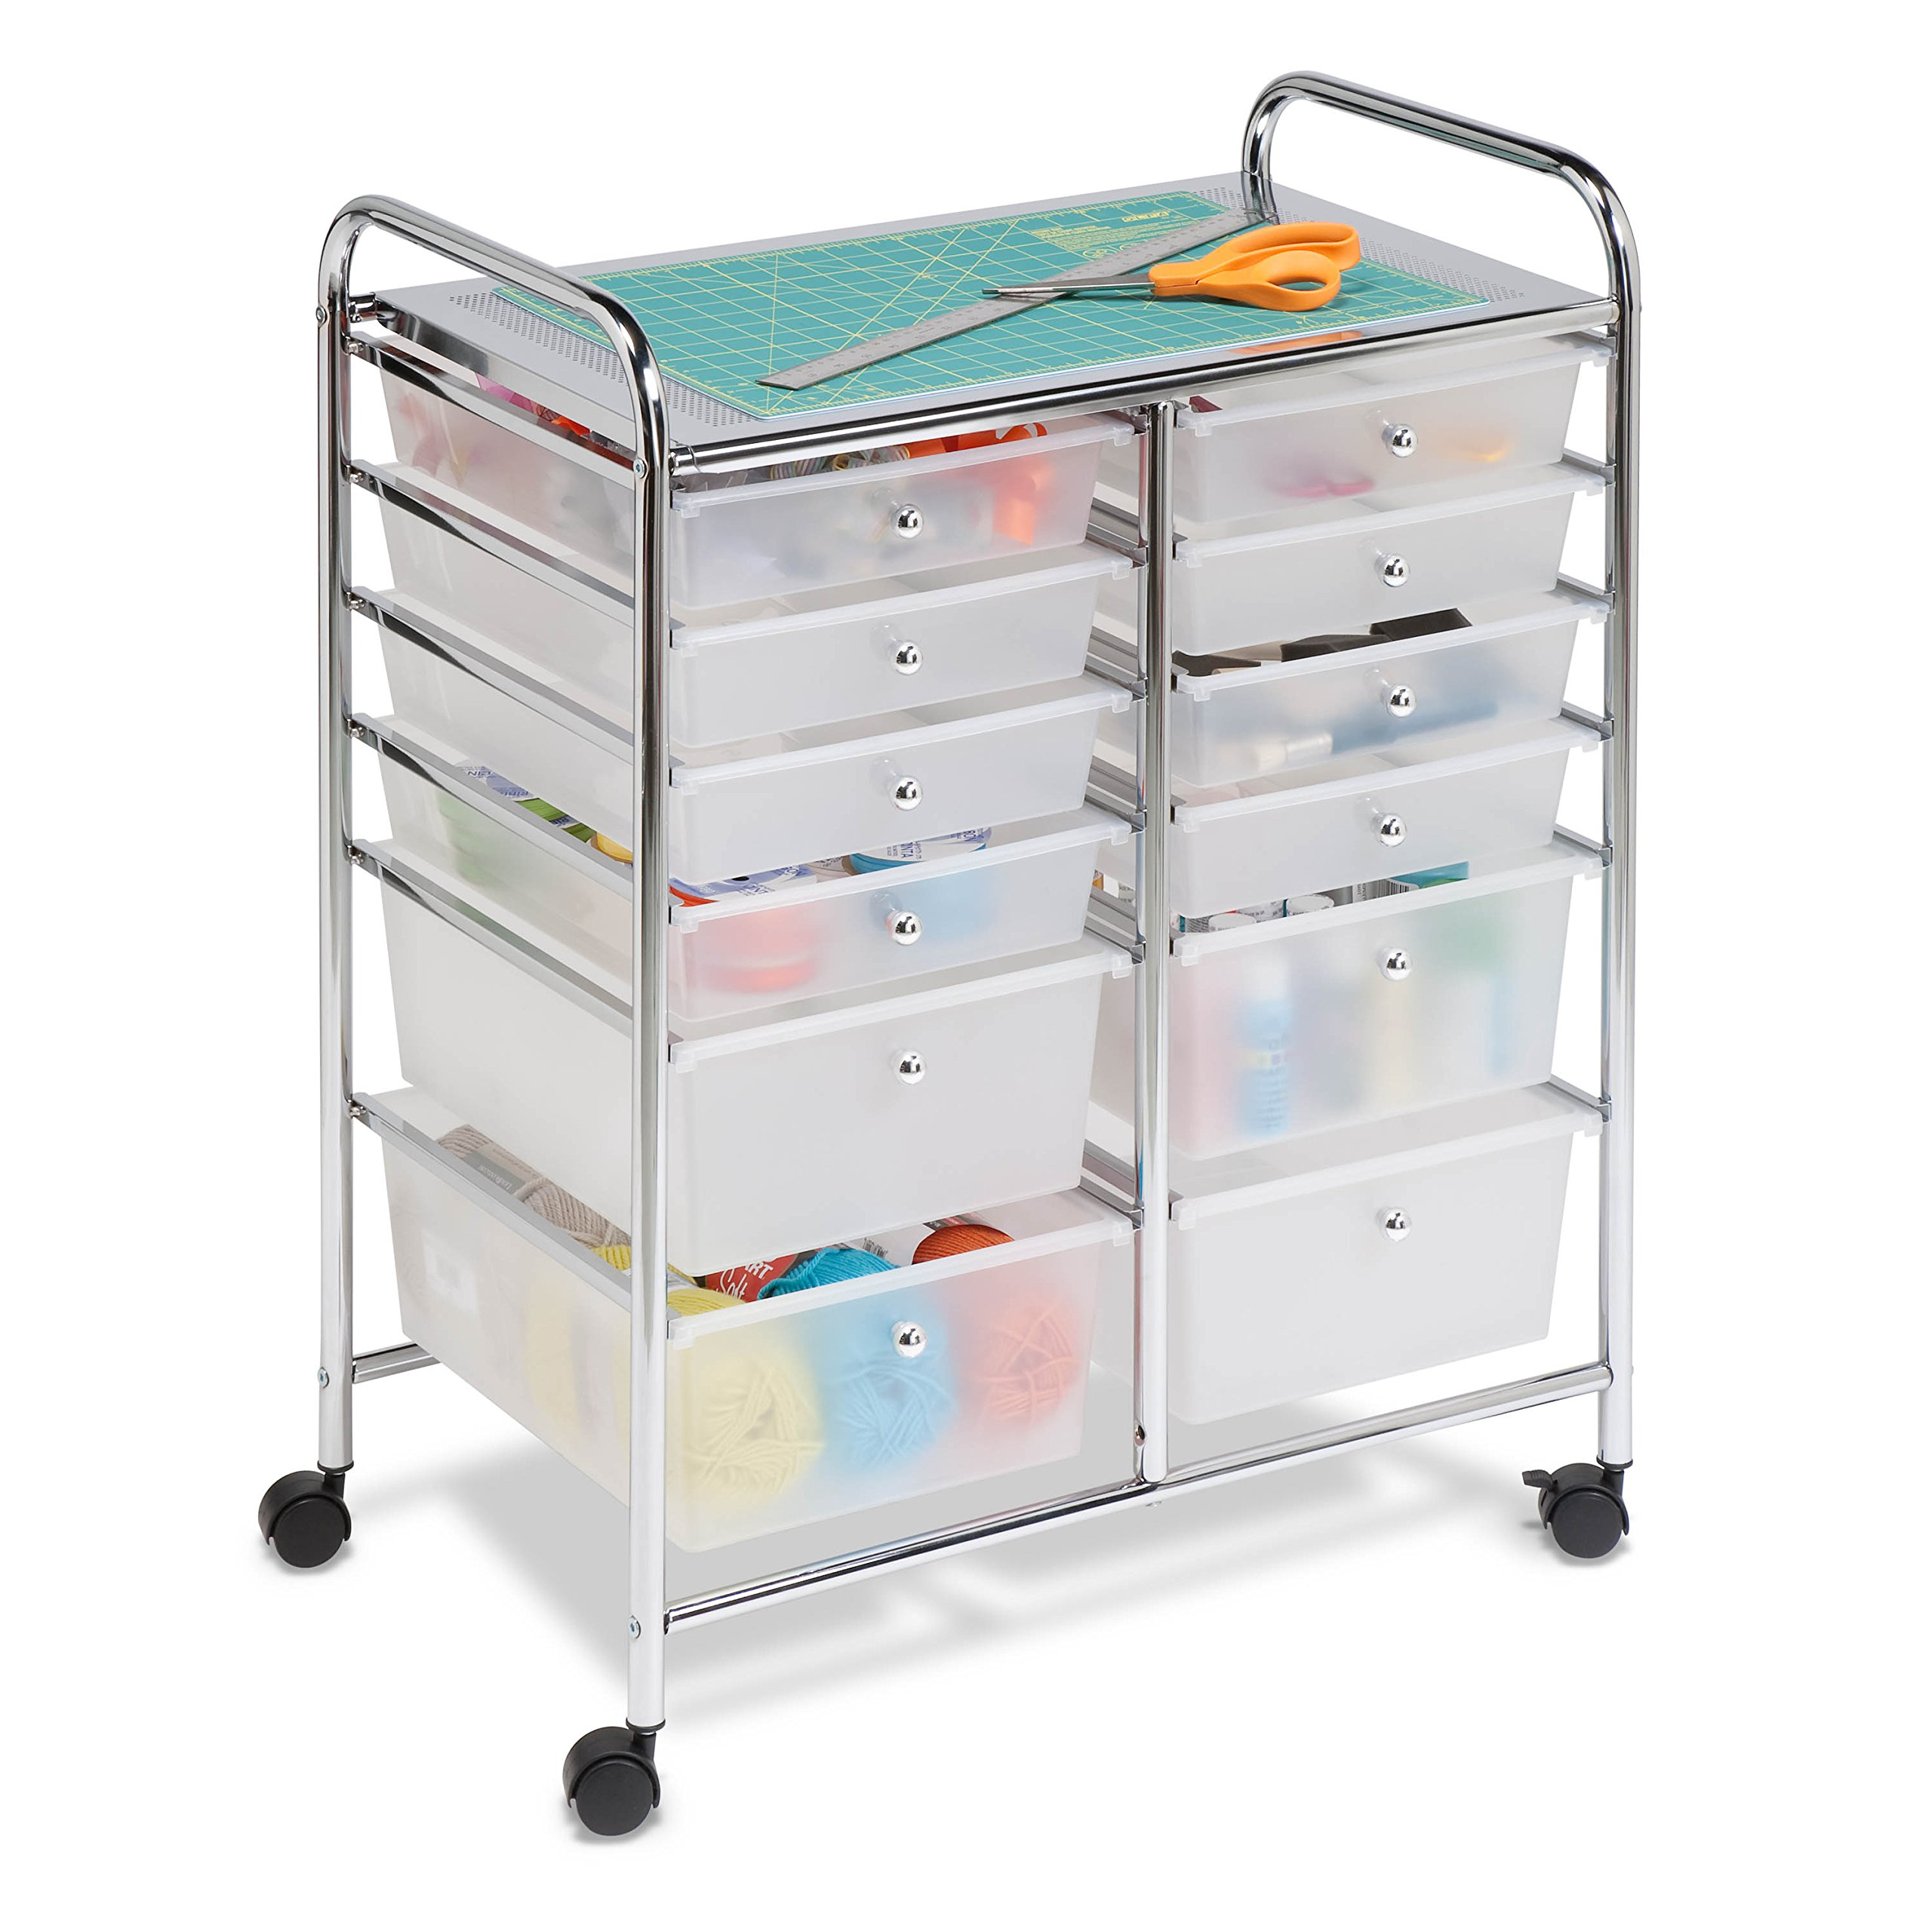 Honey-Can-Do Rolling Storage Cart and Organizer with 12 Plastic Drawers by Honey-Can-Do